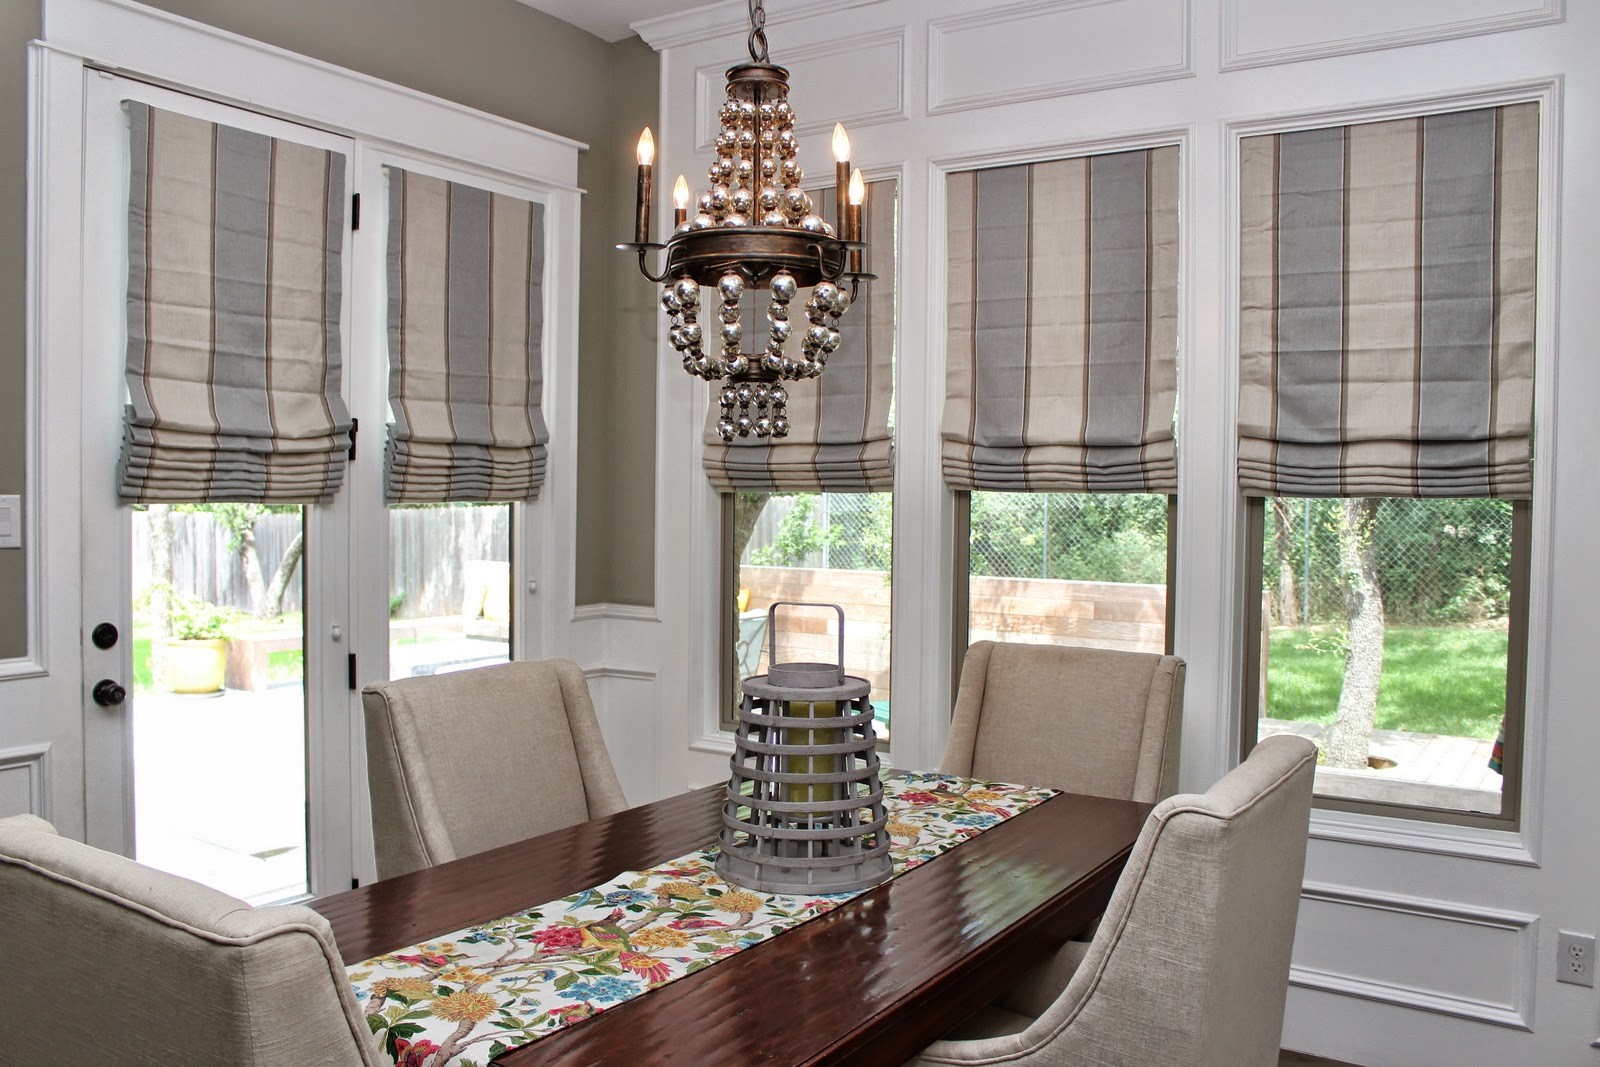 Glass Door and Window Treatments with Unique Grey Vertical Blinds